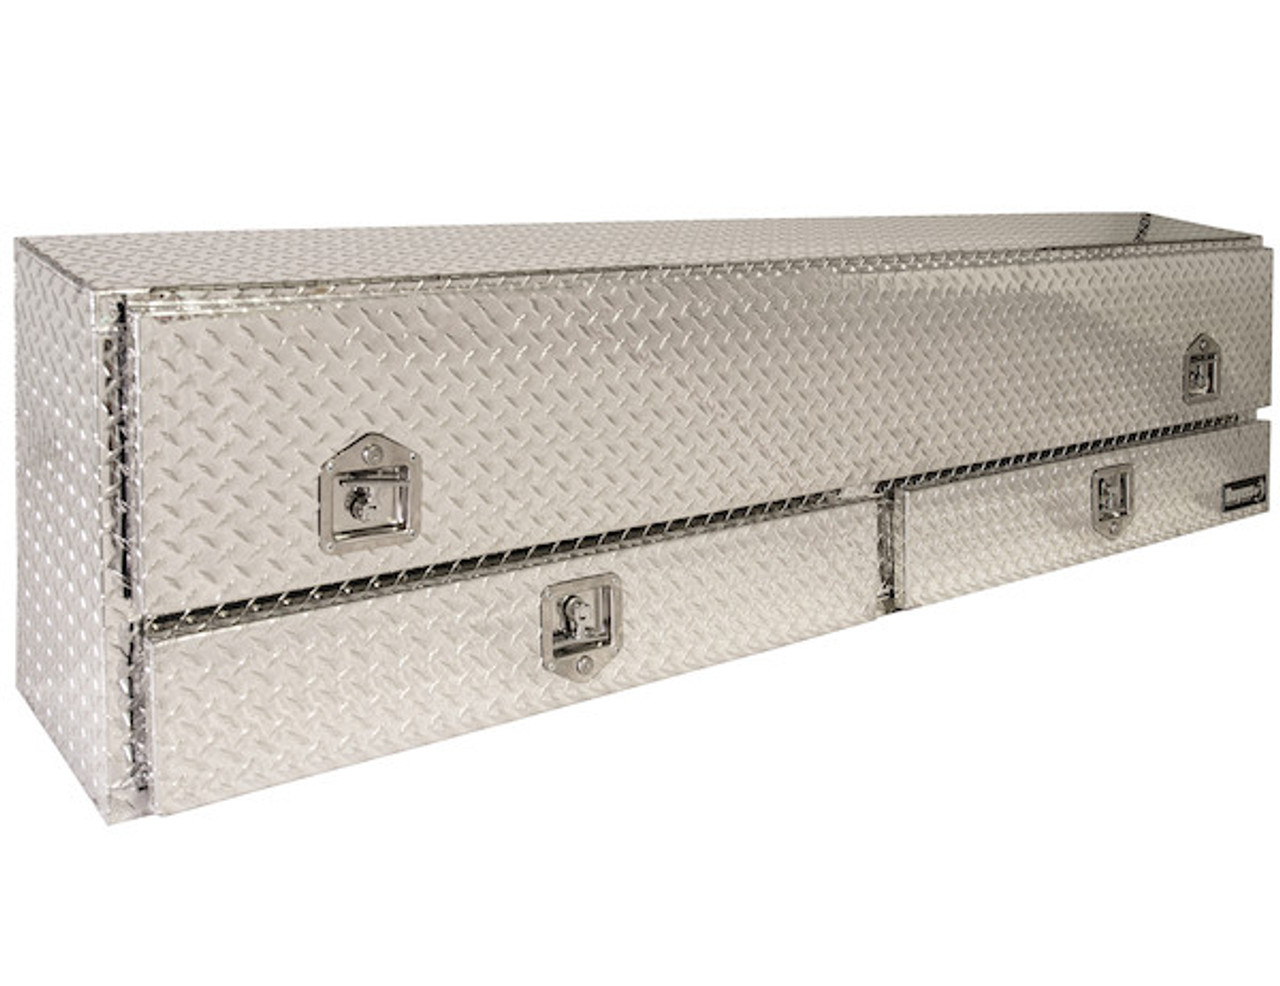 """1705641 BUYERS PRODUCTS DIAMOND TREAD ALUMINUM CONTRACTOR TRUCK TOOLBOX WITH LOWER DRAWERS 21""""HX13.5""""DX72""""W"""